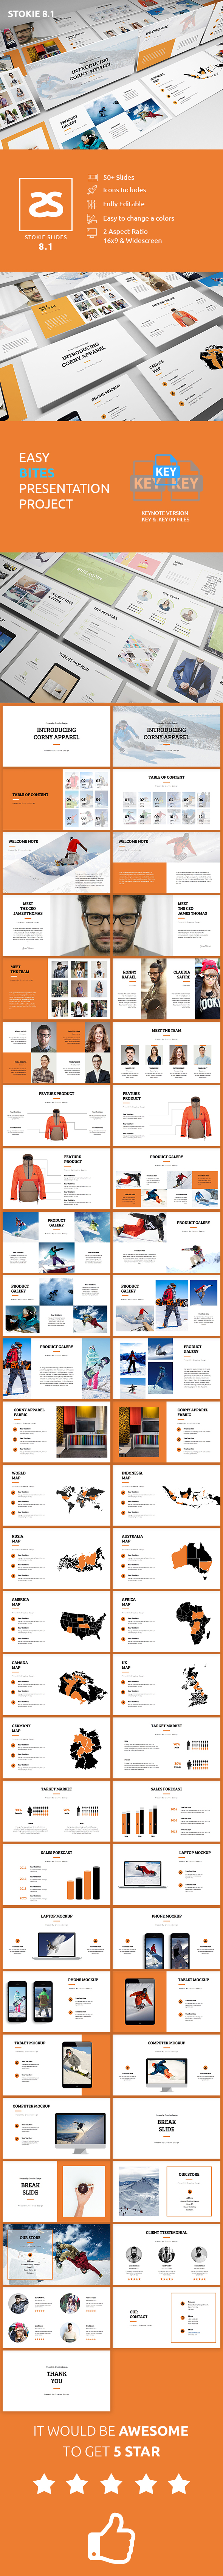 GraphicRiver Apparel Product Launching Keynote Template 8.1 20872350